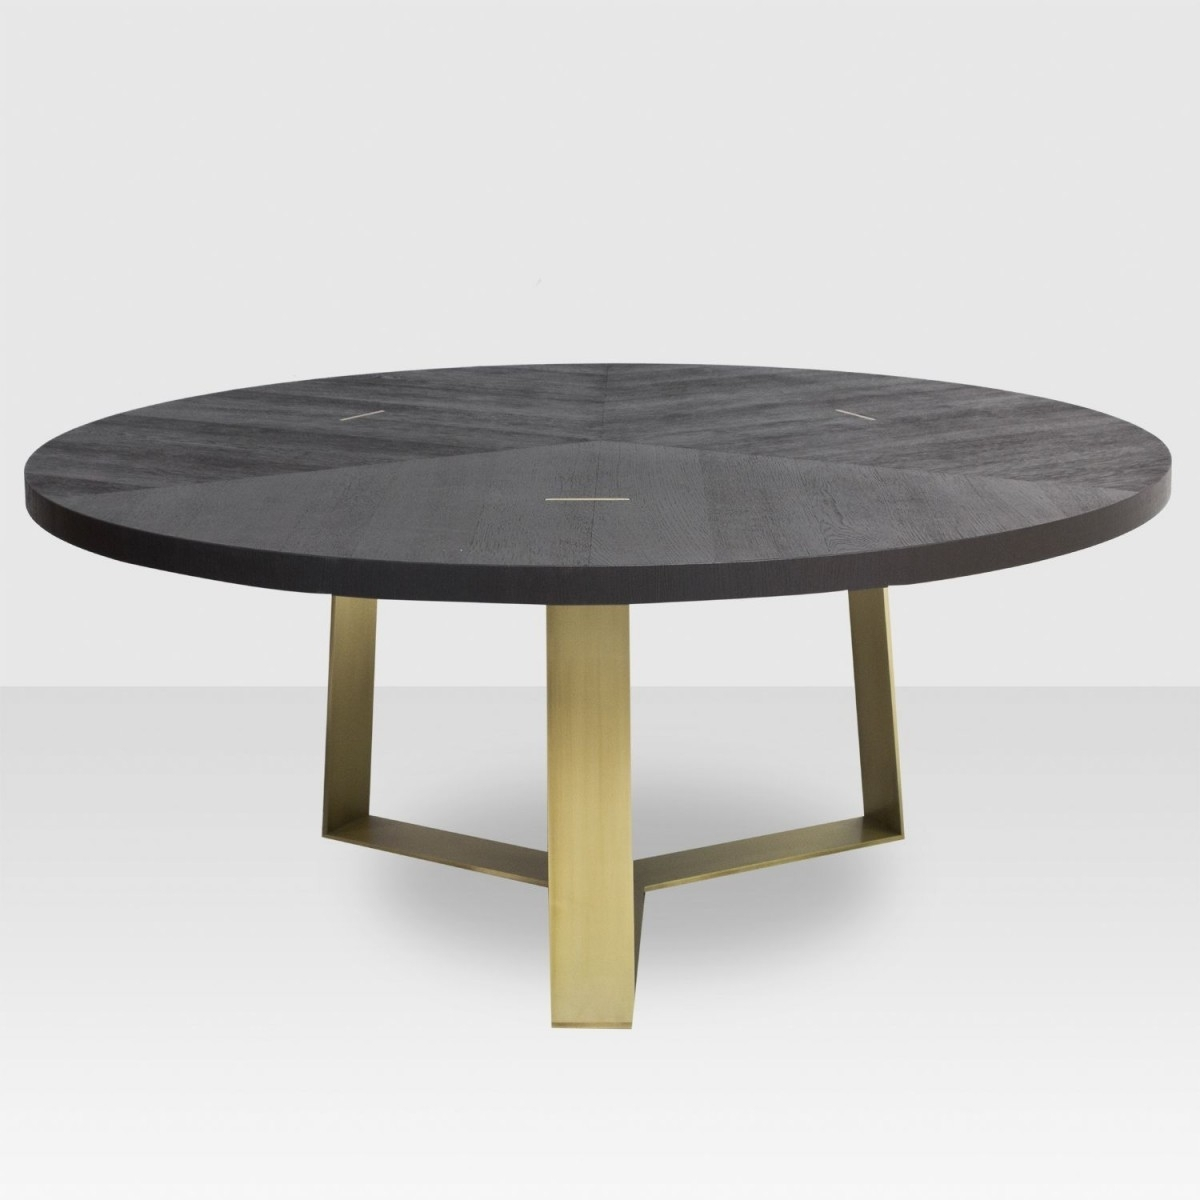 Sienna Dining Table – Elte In Newest Outdoor Sienna Dining Tables (View 6 of 20)